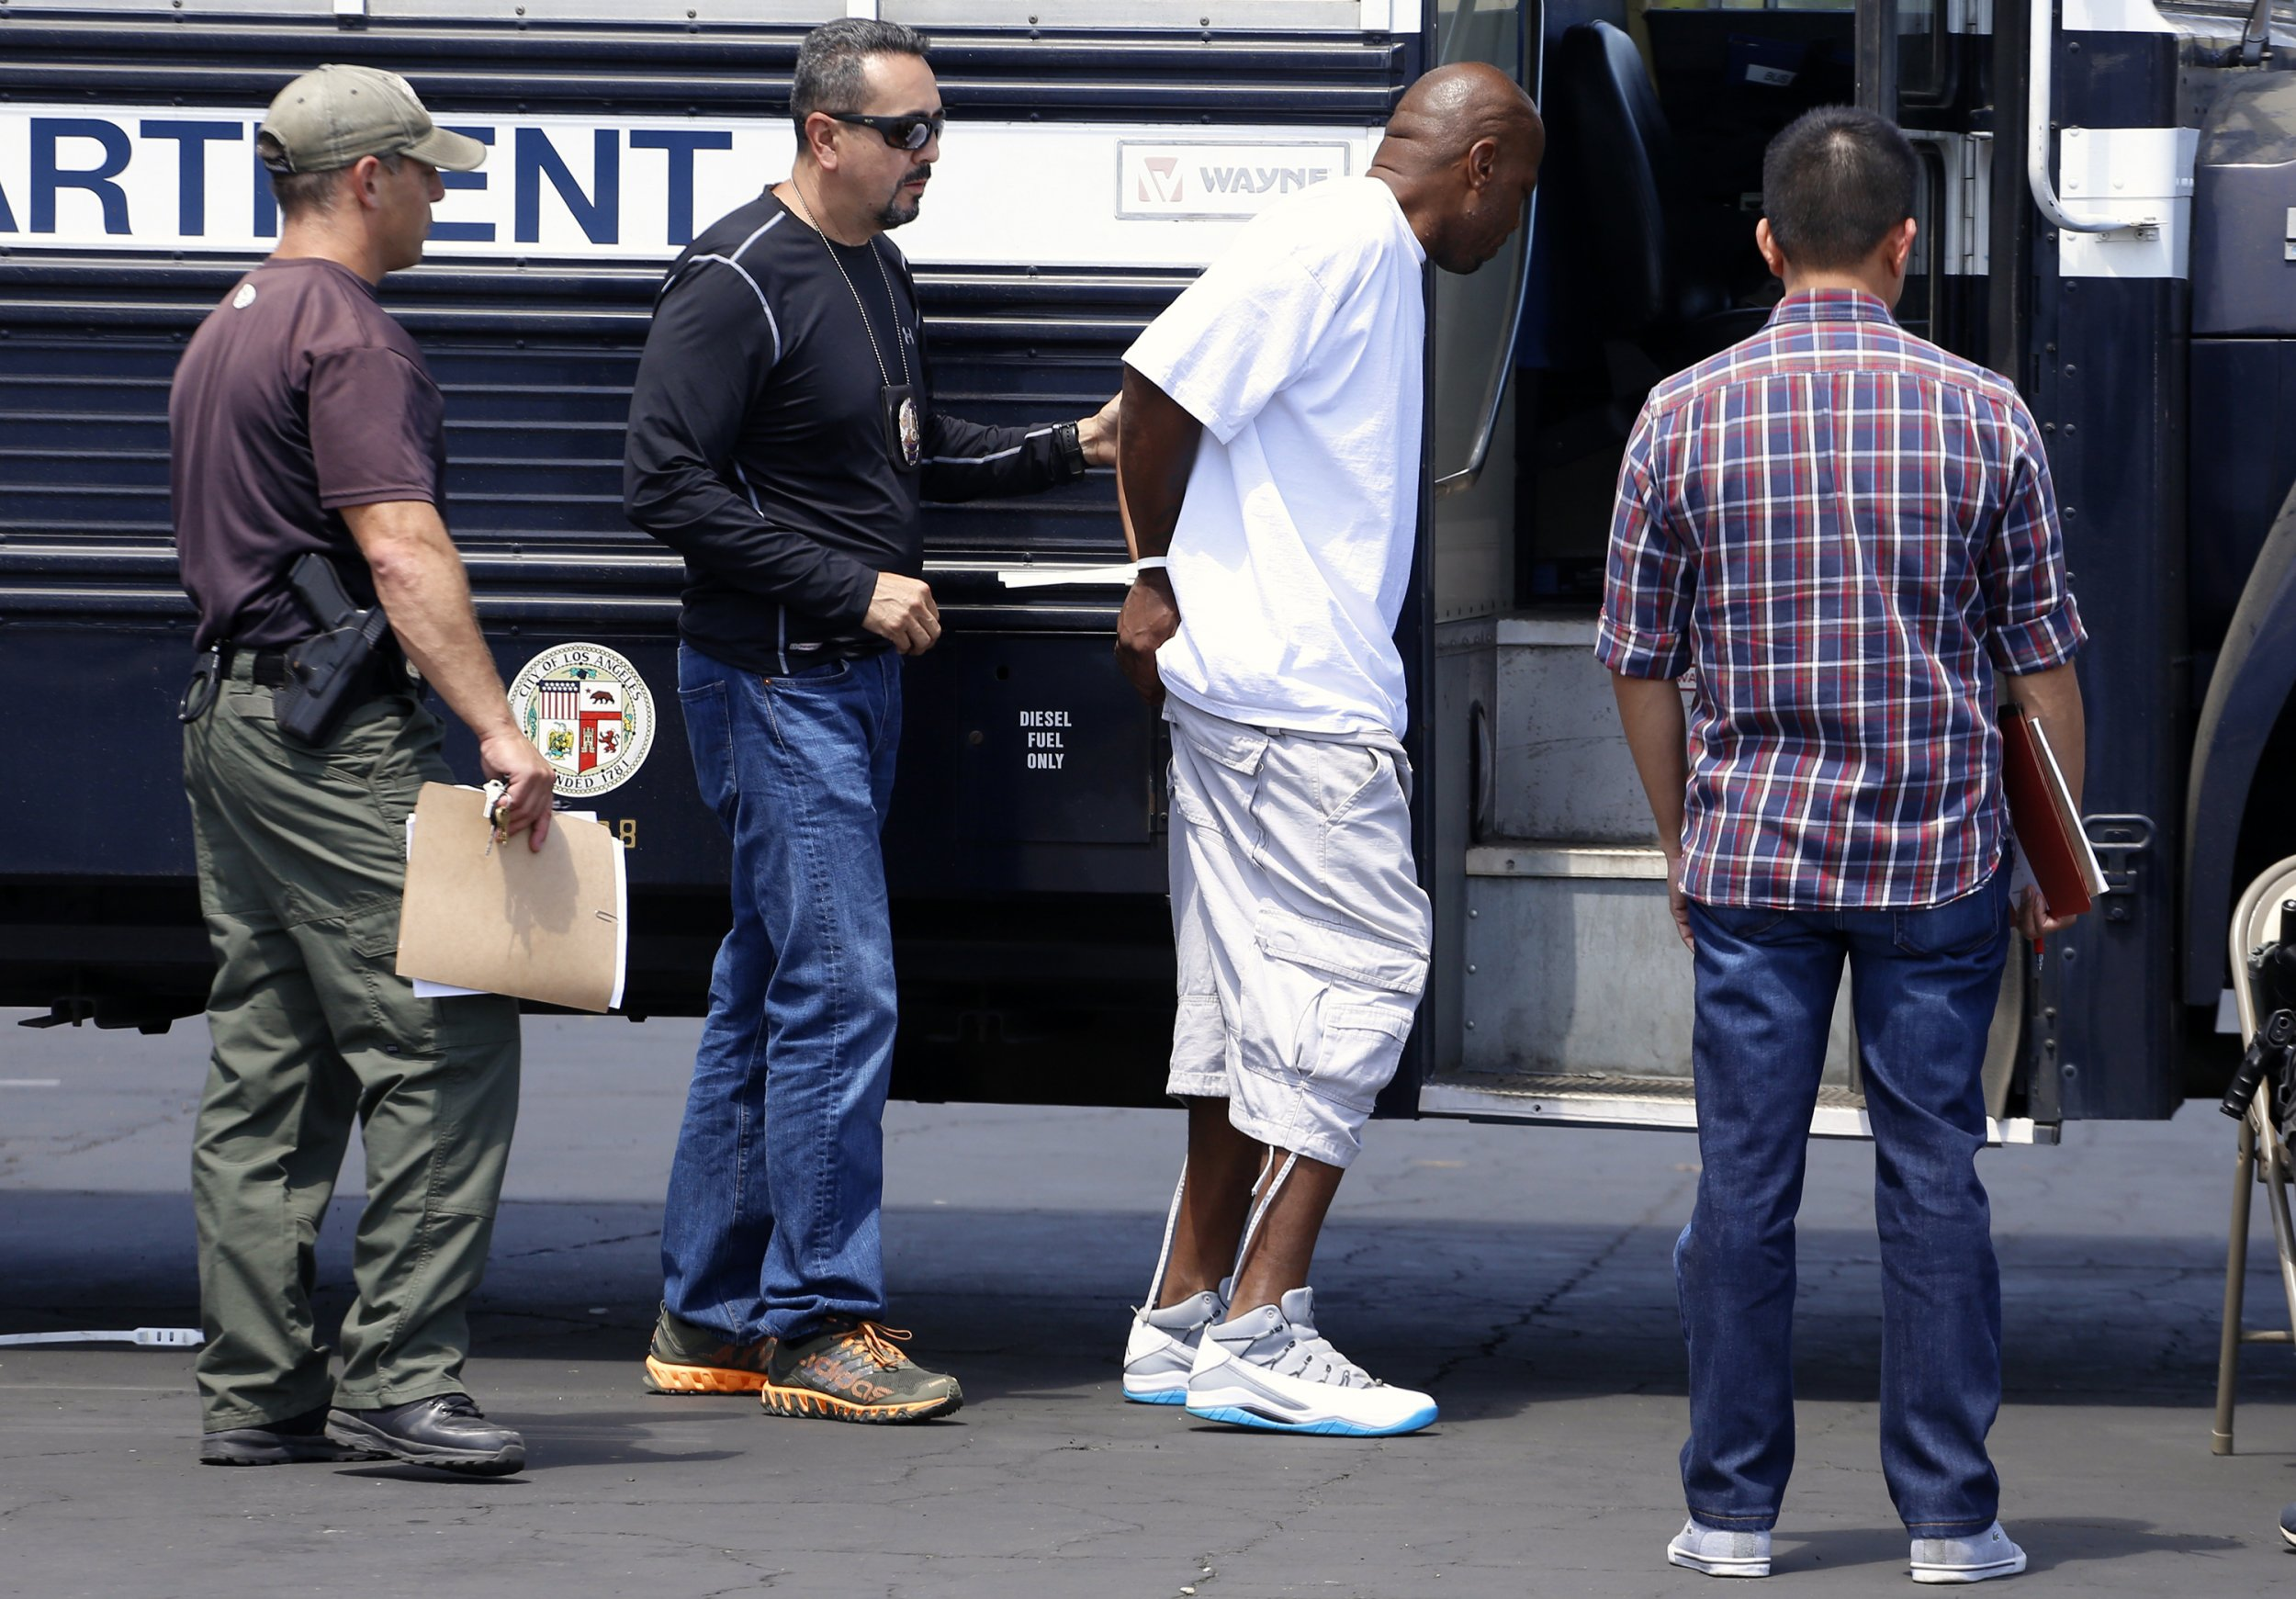 Gang Crimes: Will Black and Hispanic People Be Targeted by